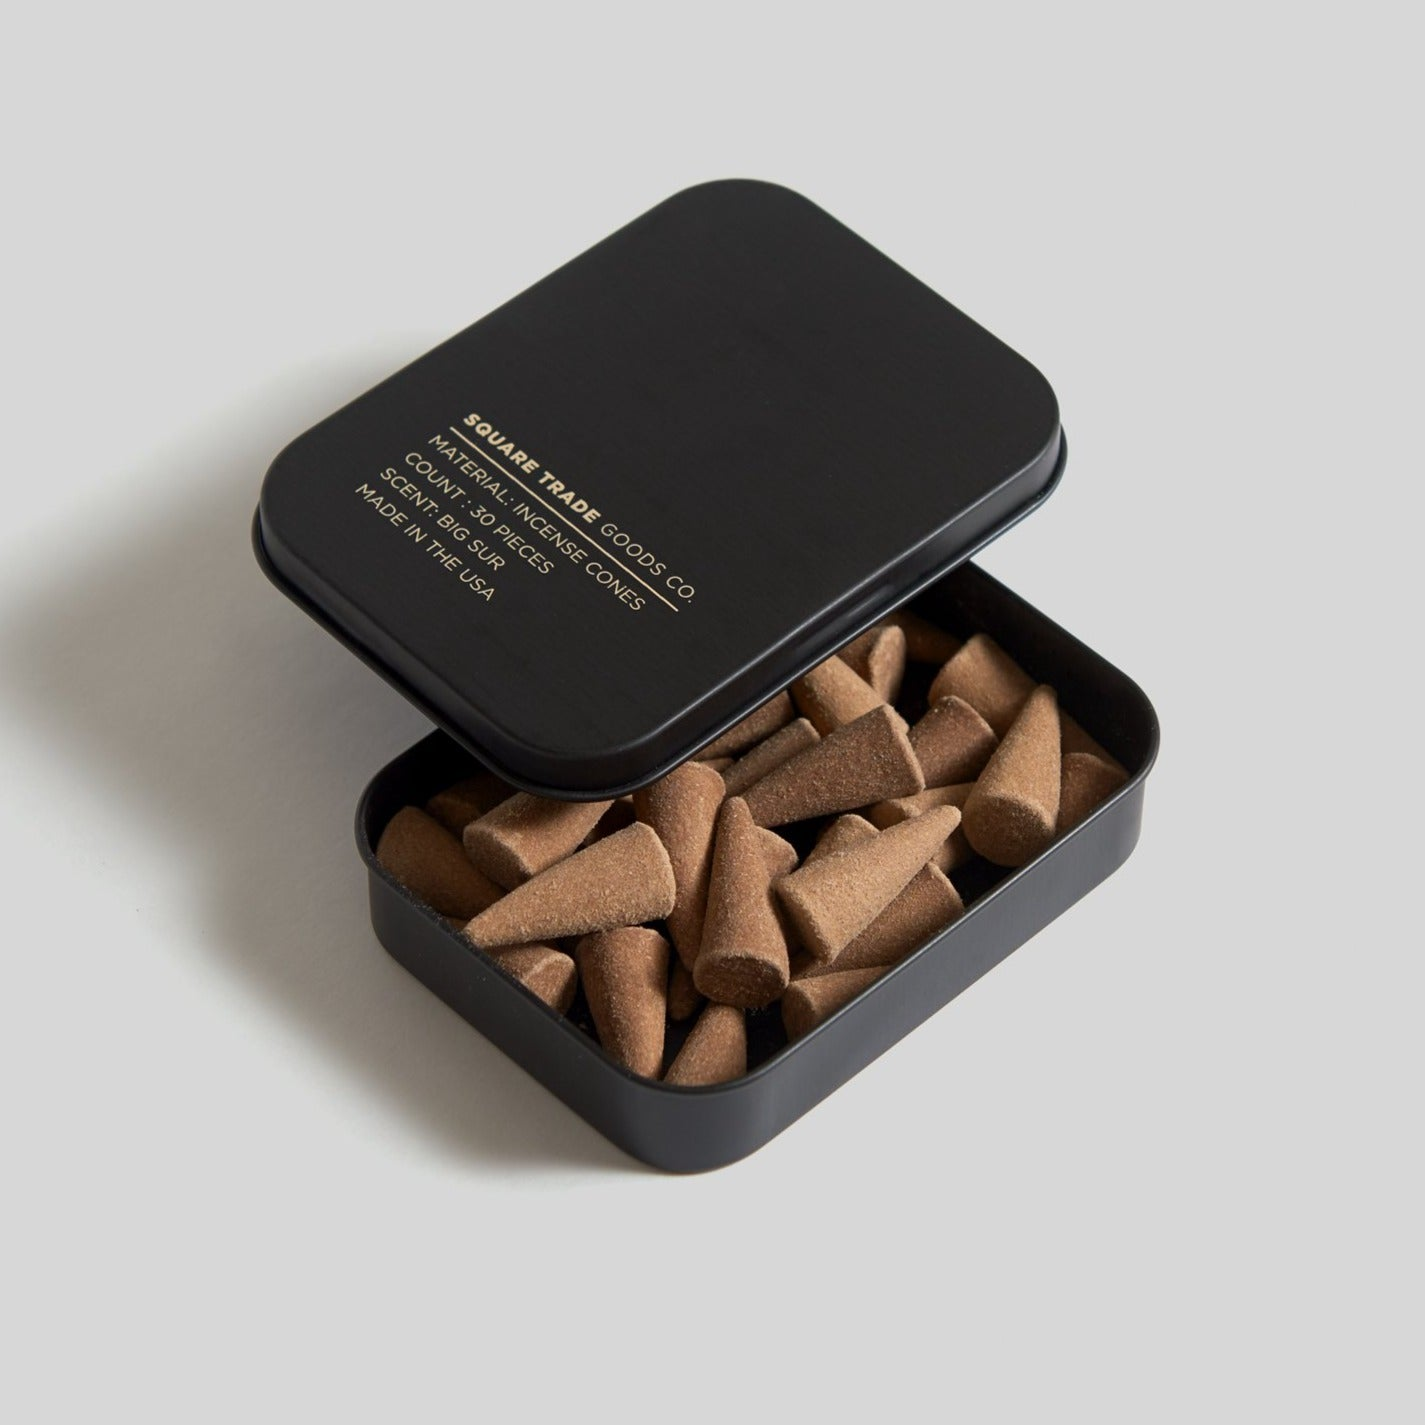 Square Trade Goods Incense Cones - Big Sur